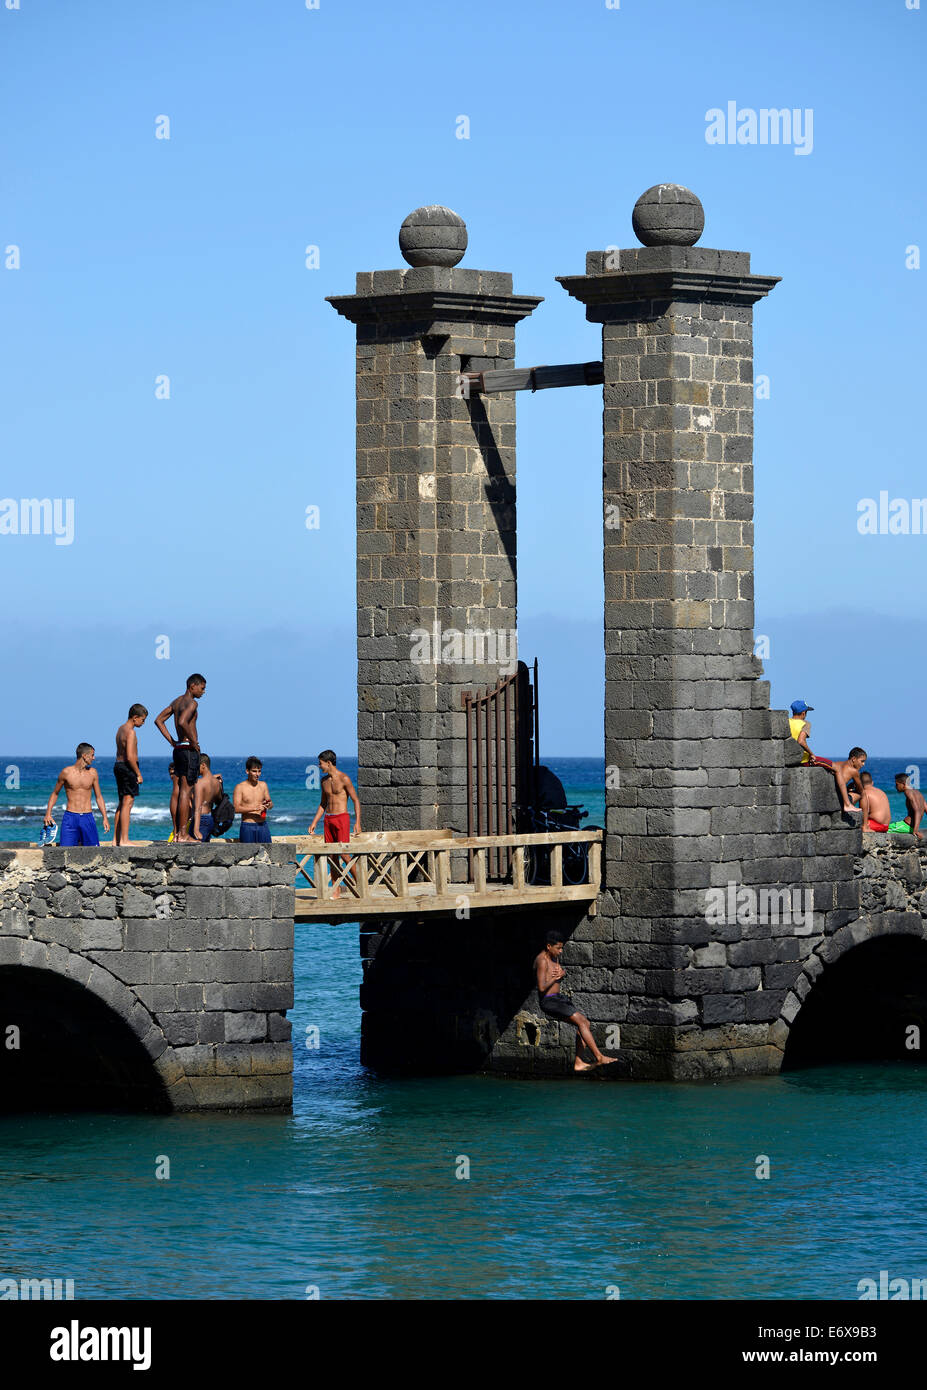 Local children and young people bathing at the Puente de las Bolas, stone gate outside the fort Castillo de San Stock Photo